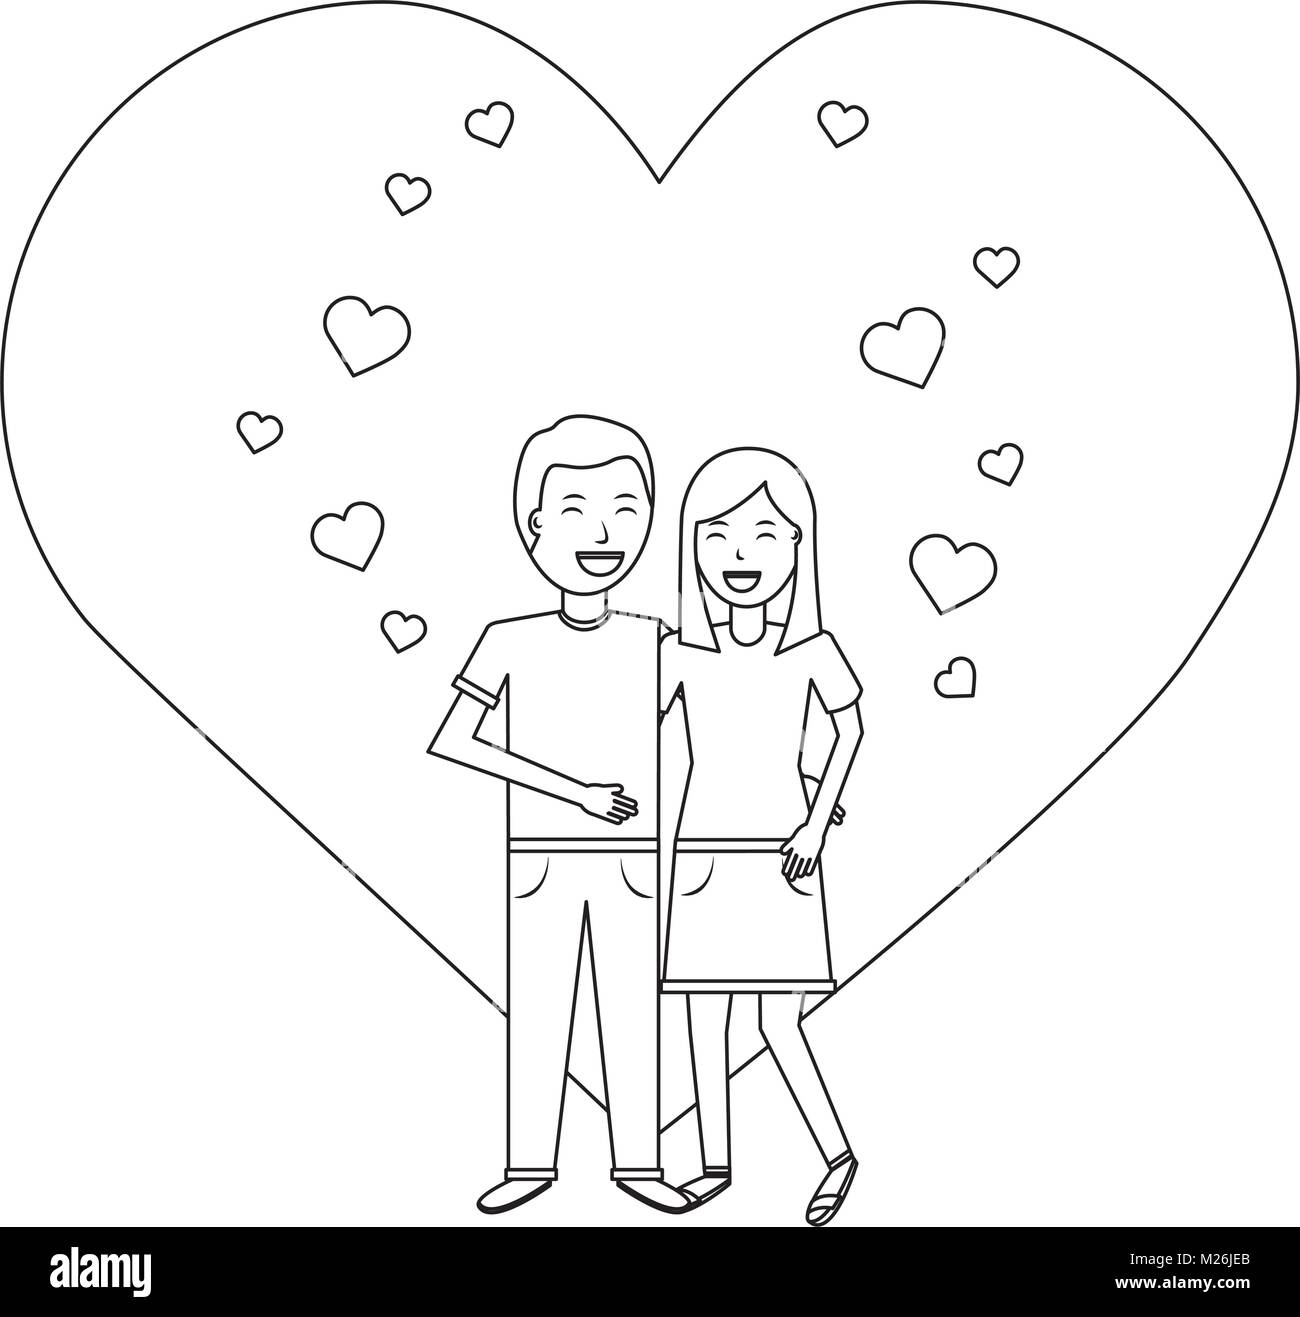 valentines day poster with man and woman tenderly hugging - Stock Image